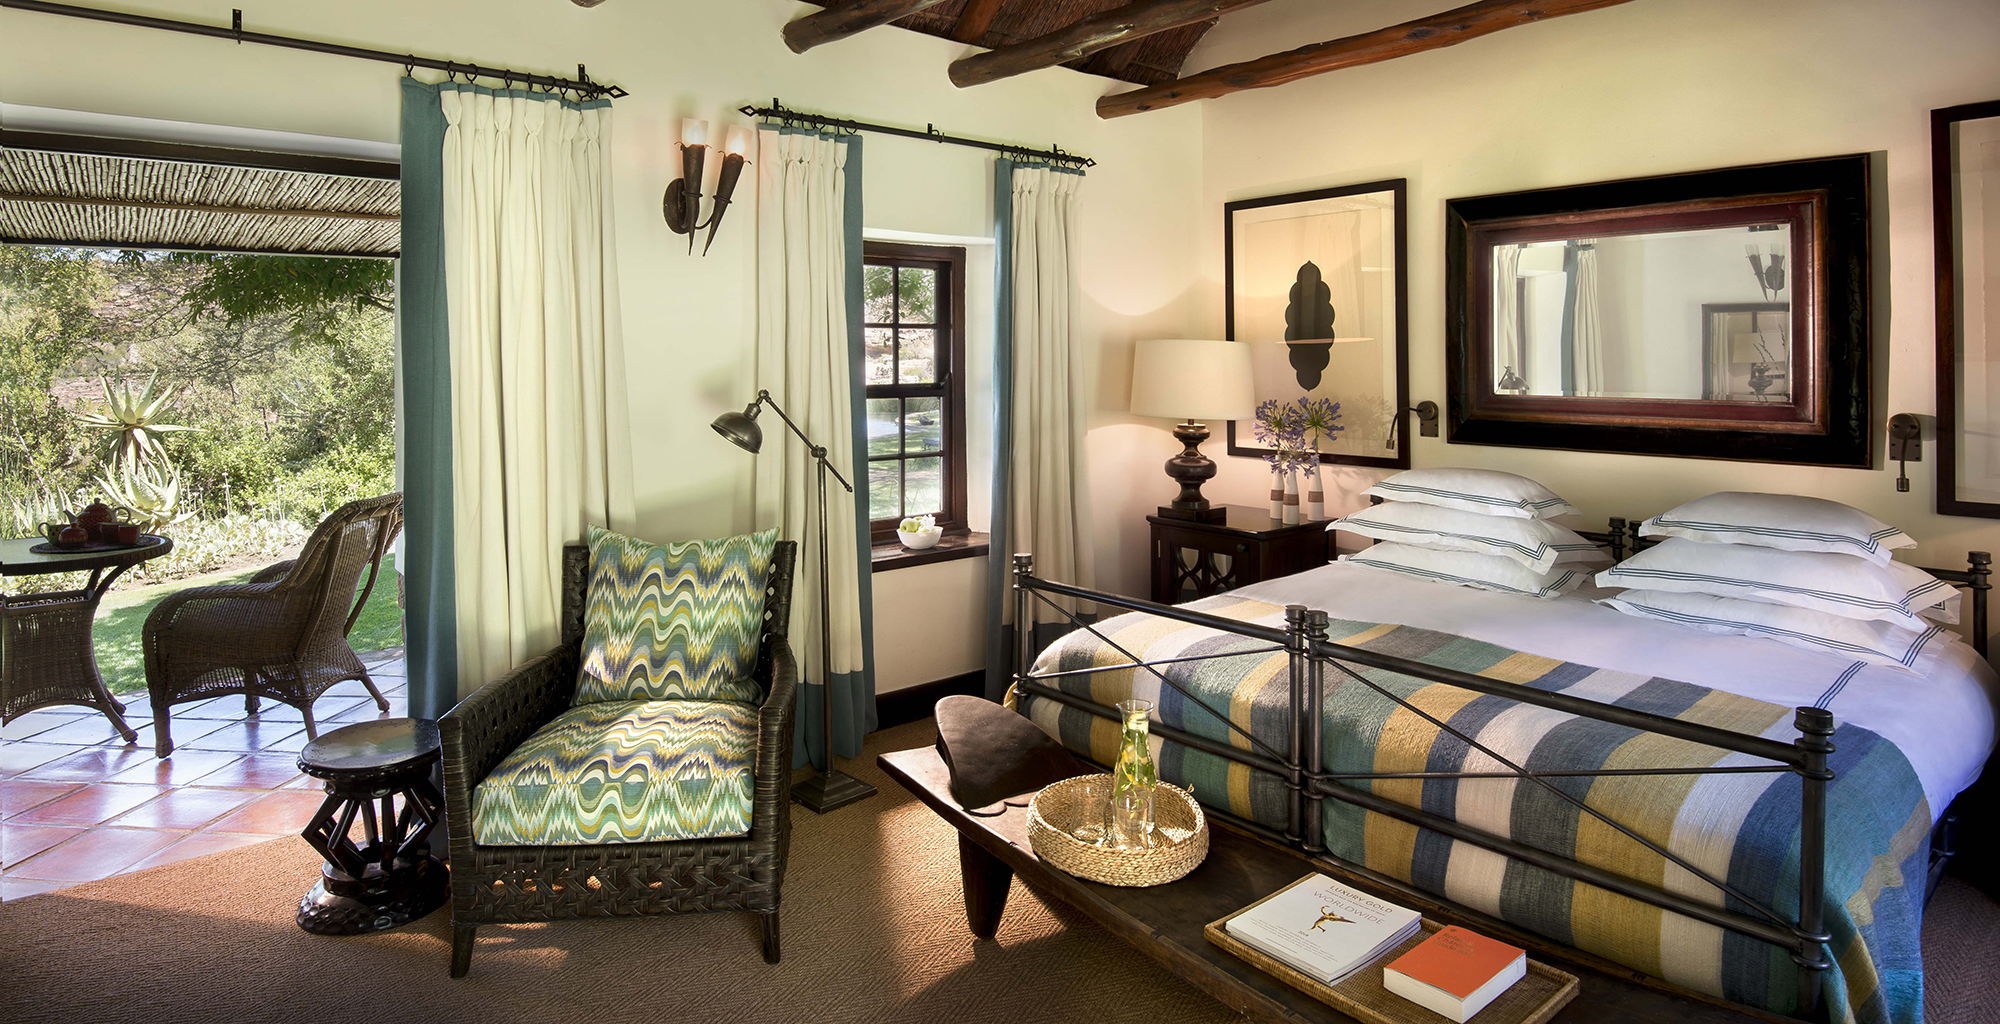 South-Africa-Bushmans-Kloof-Bedroom